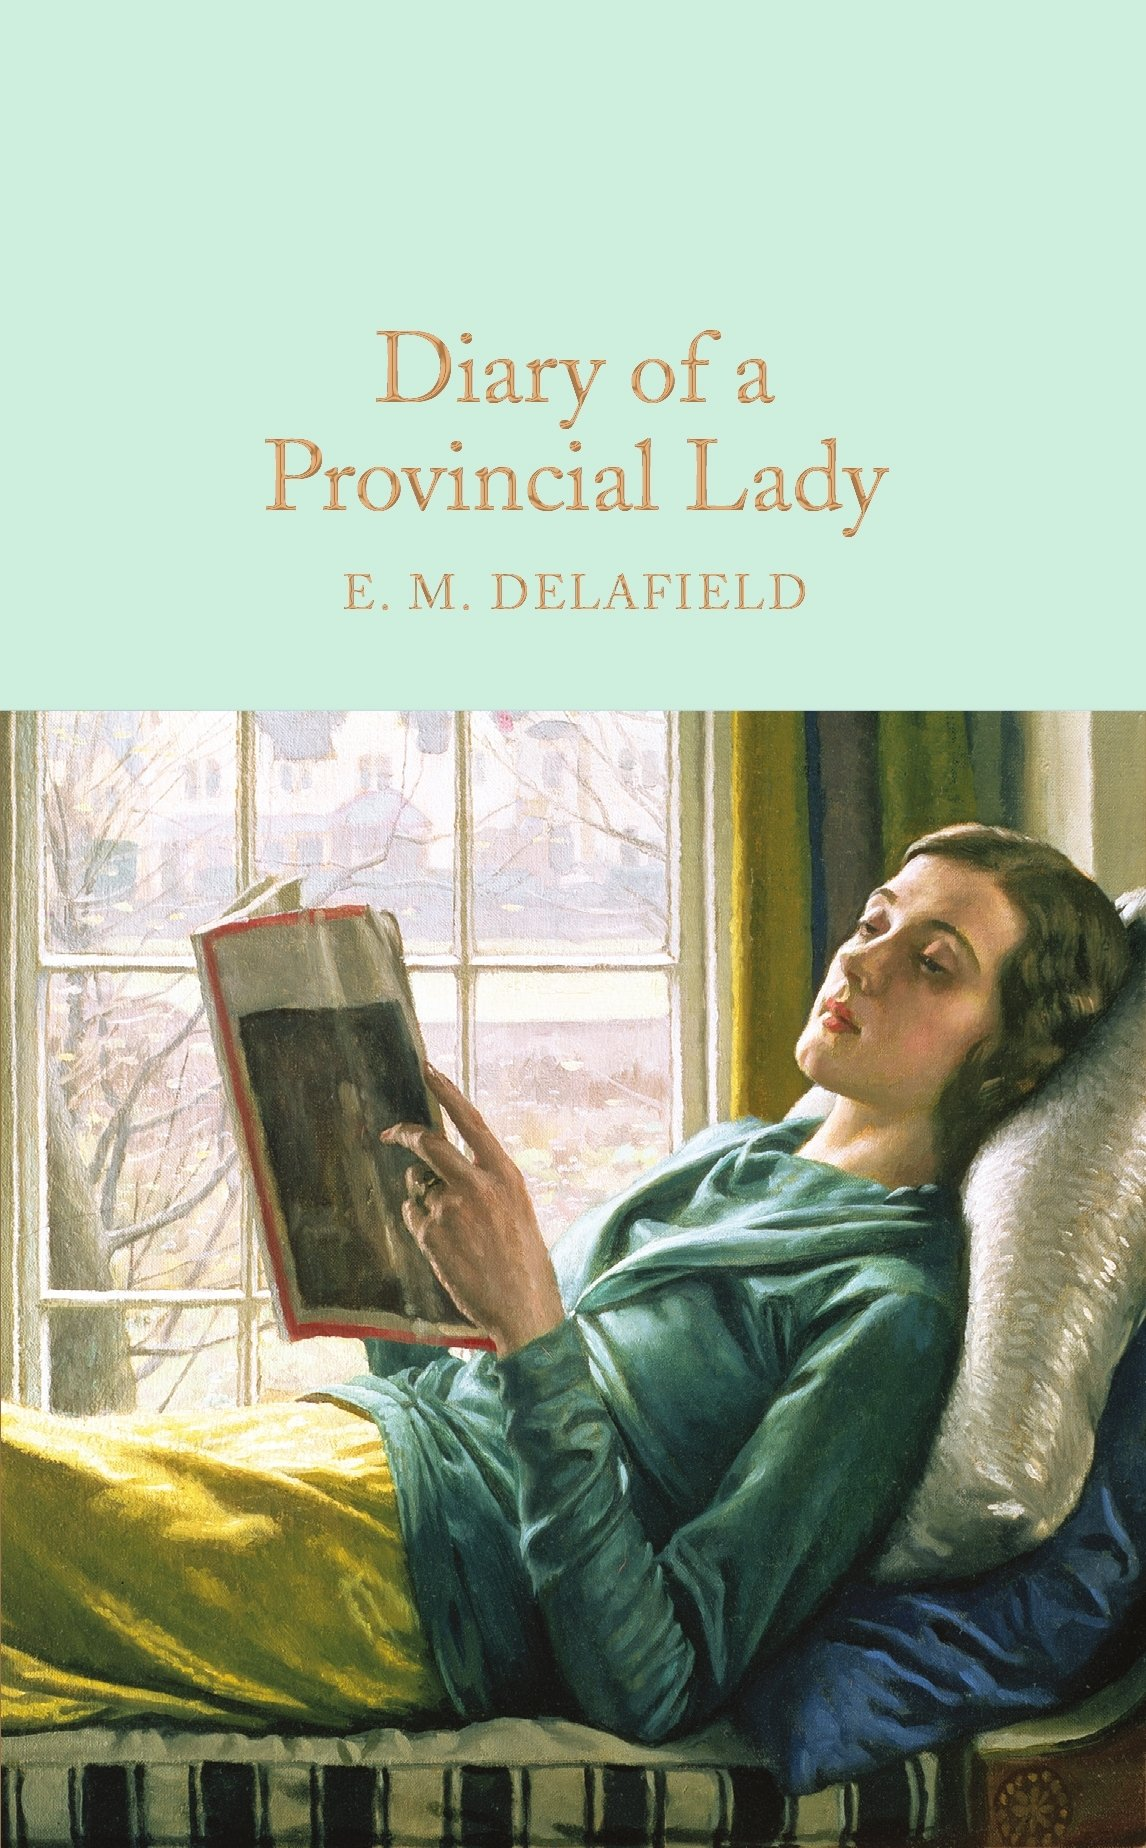 Diary of a Provincial Lady (Macmillan Collector's Library) PDF